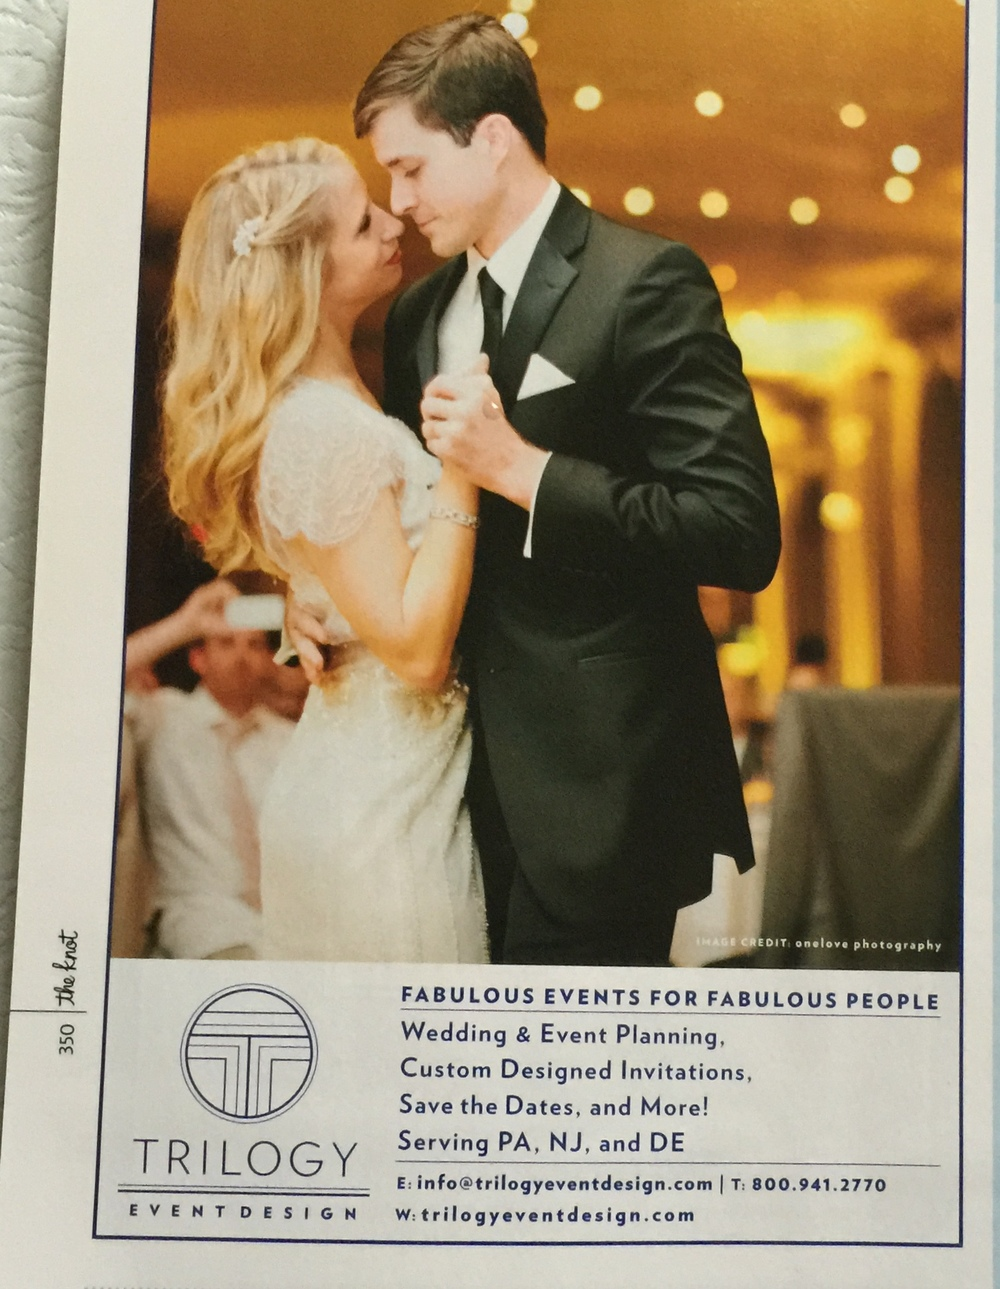 Photo featured in our print ad by onelove photography